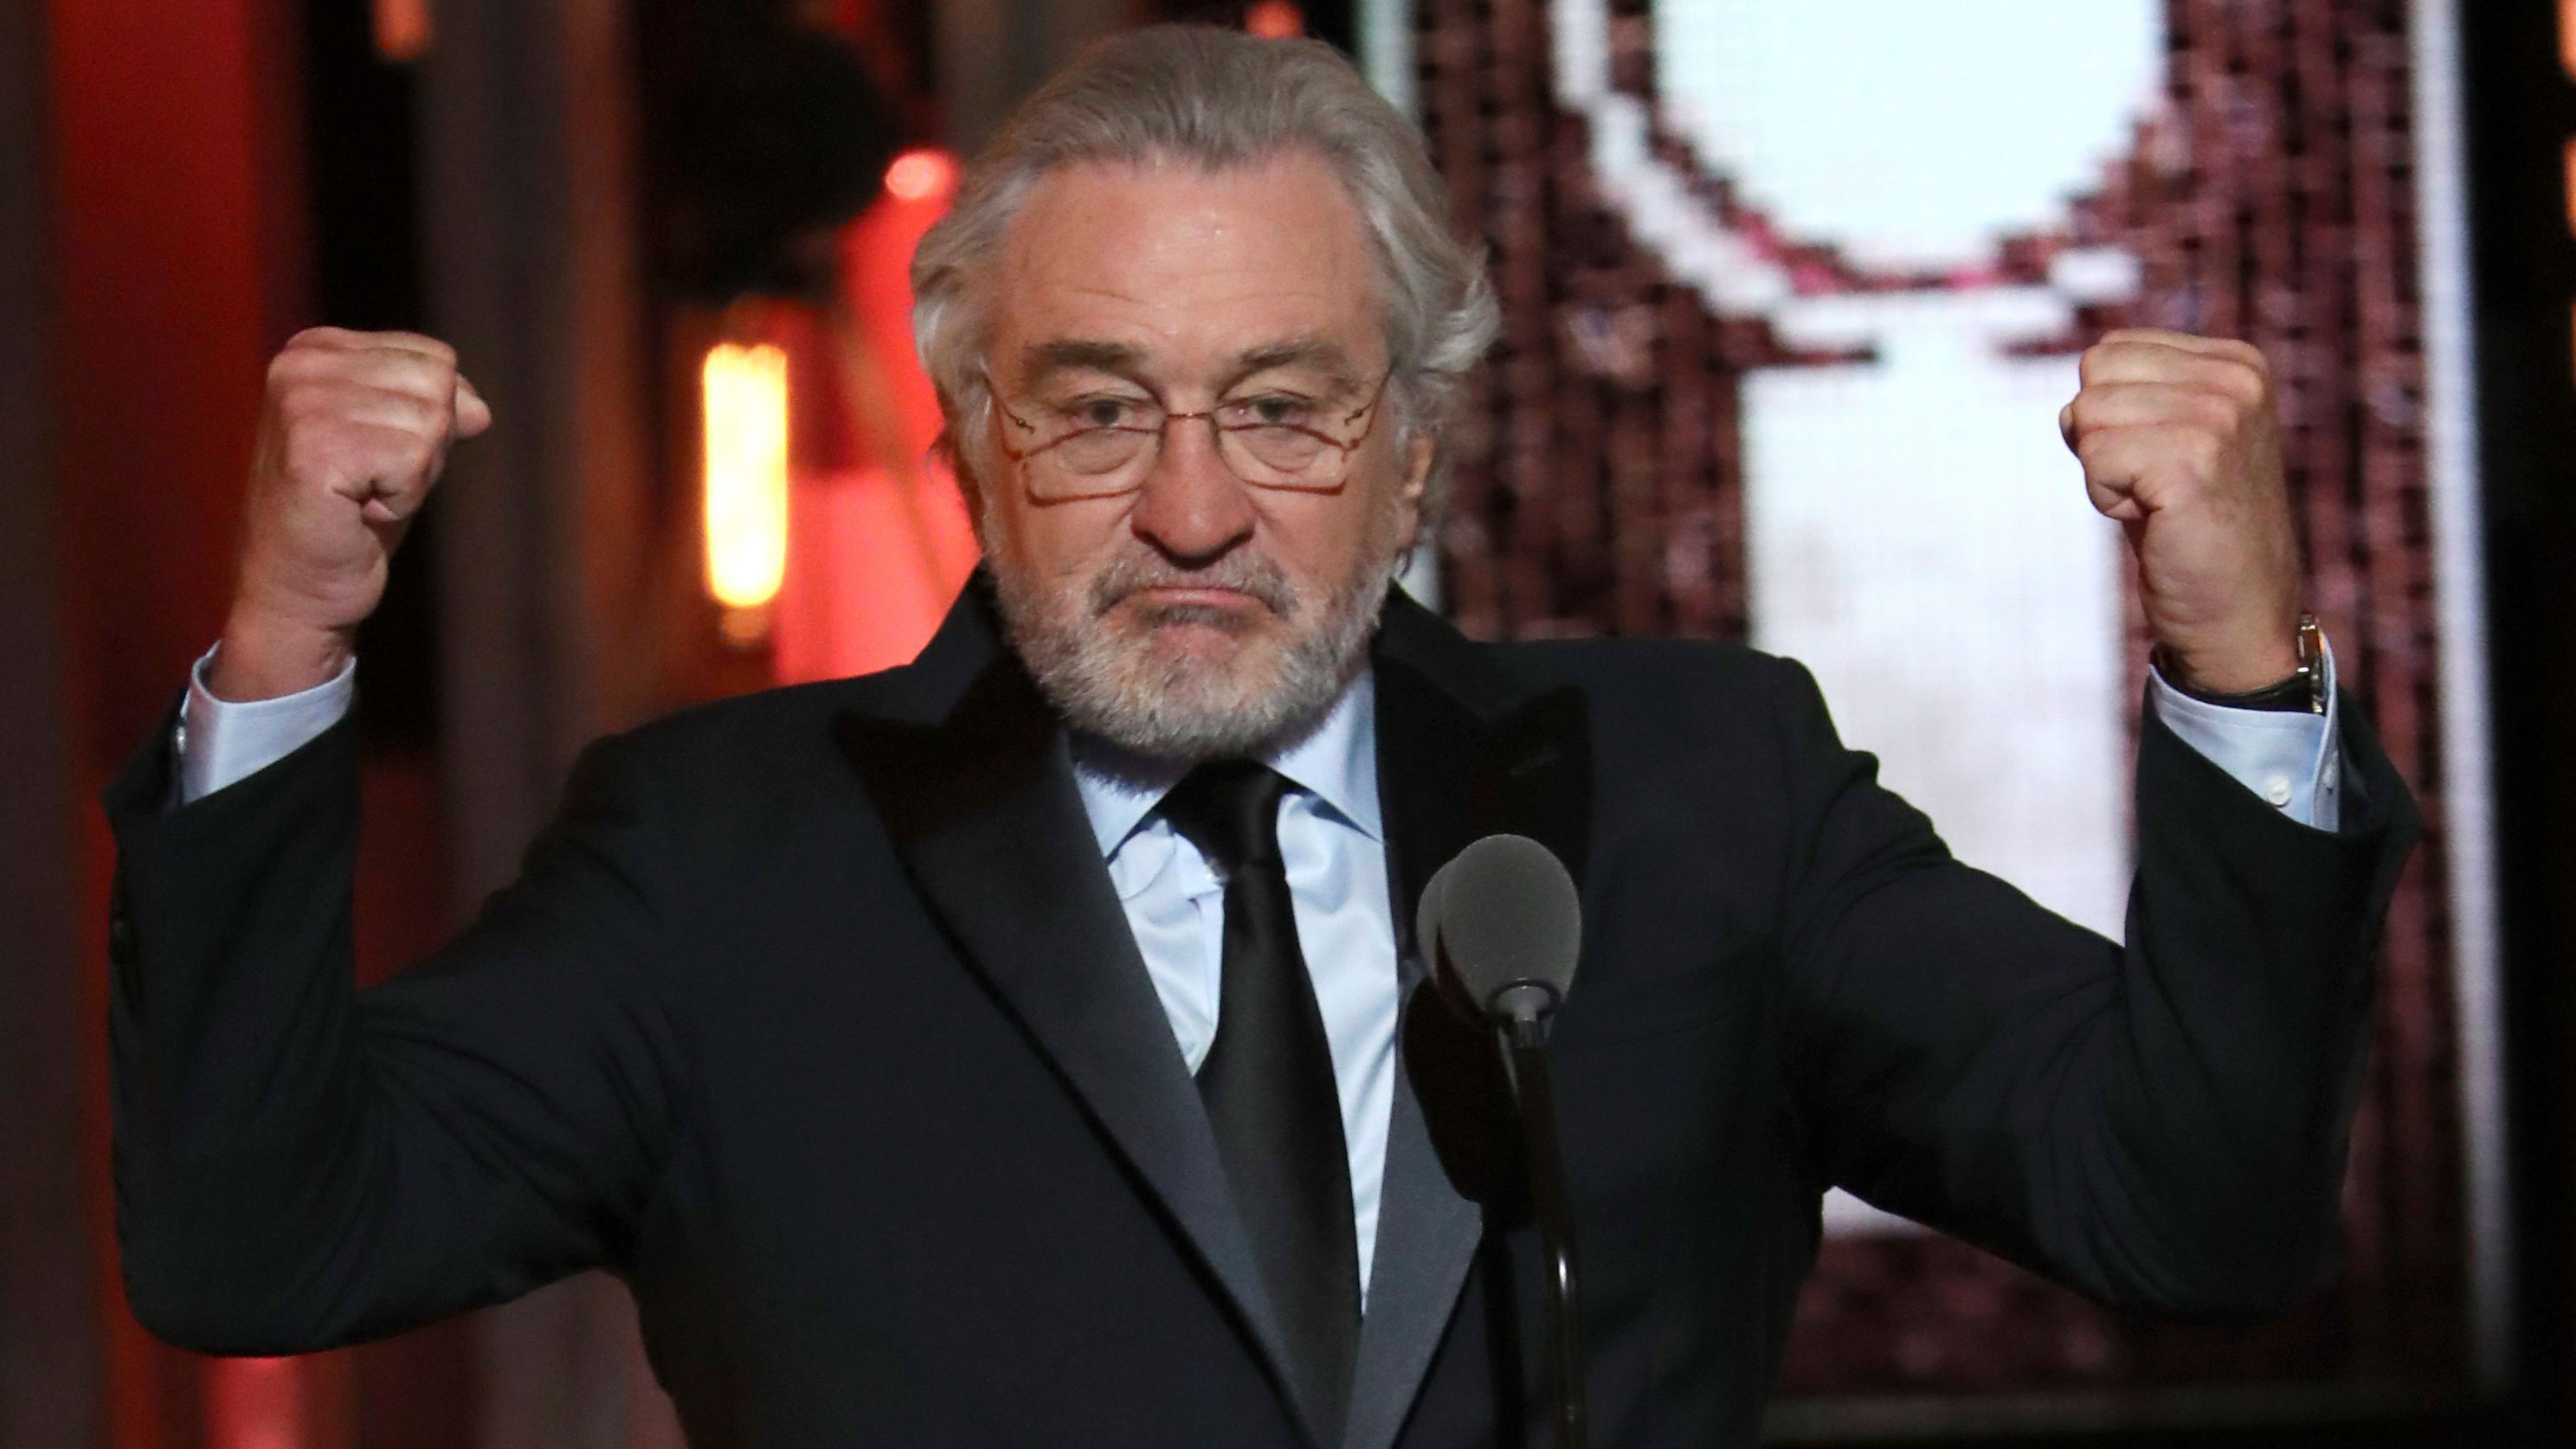 Robert De Niro says 'F